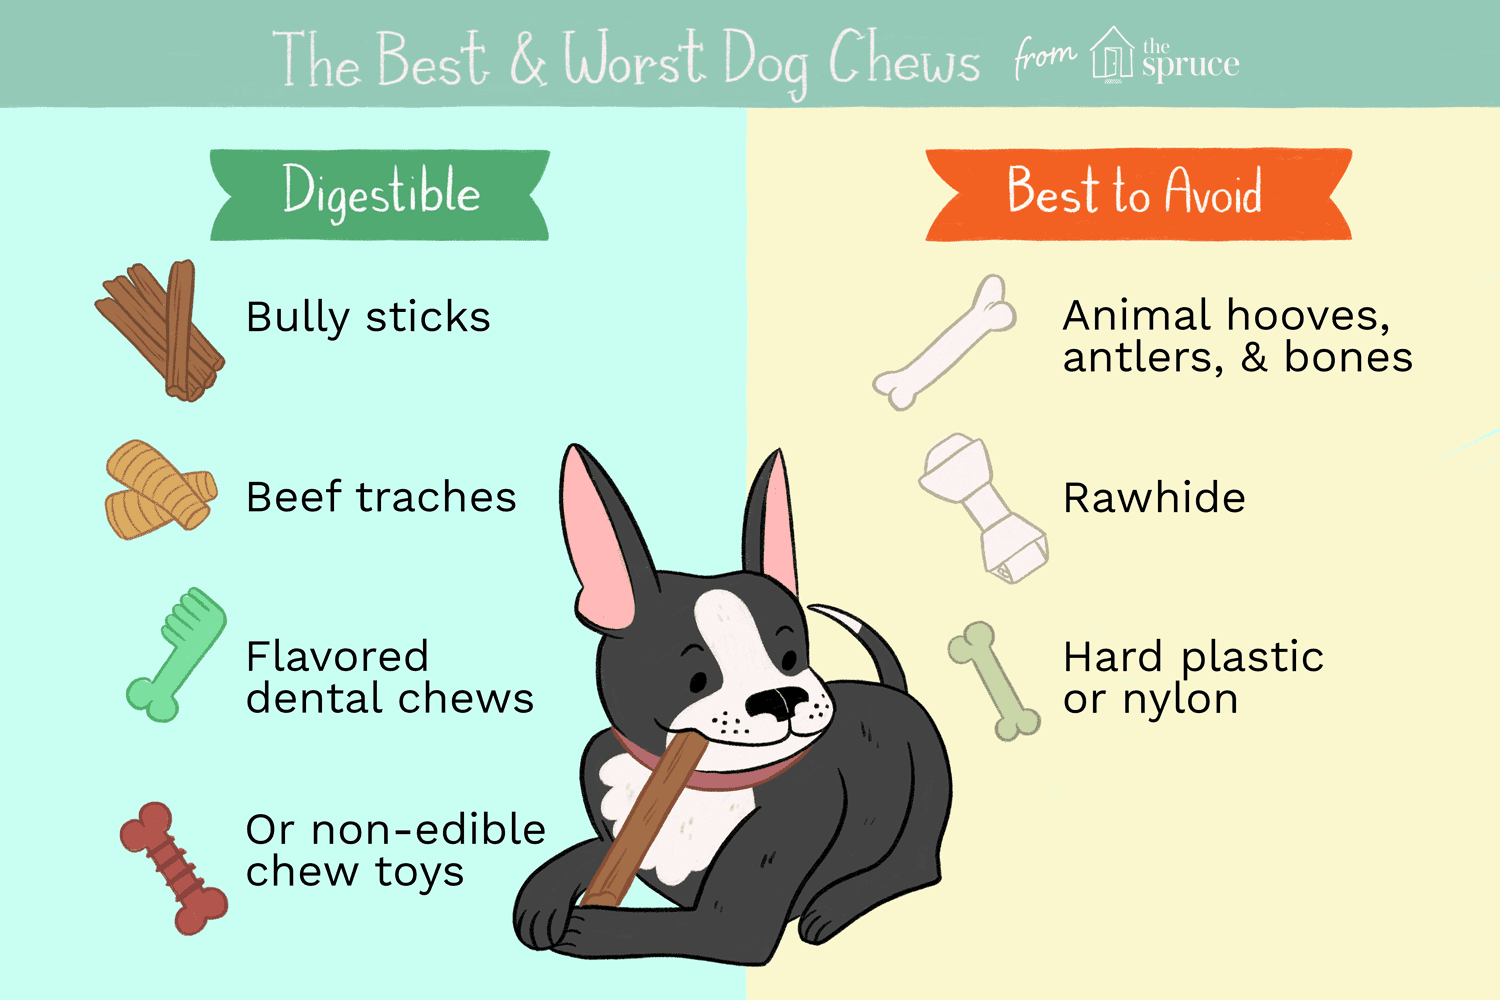 How To Choose The Best Dog Chews